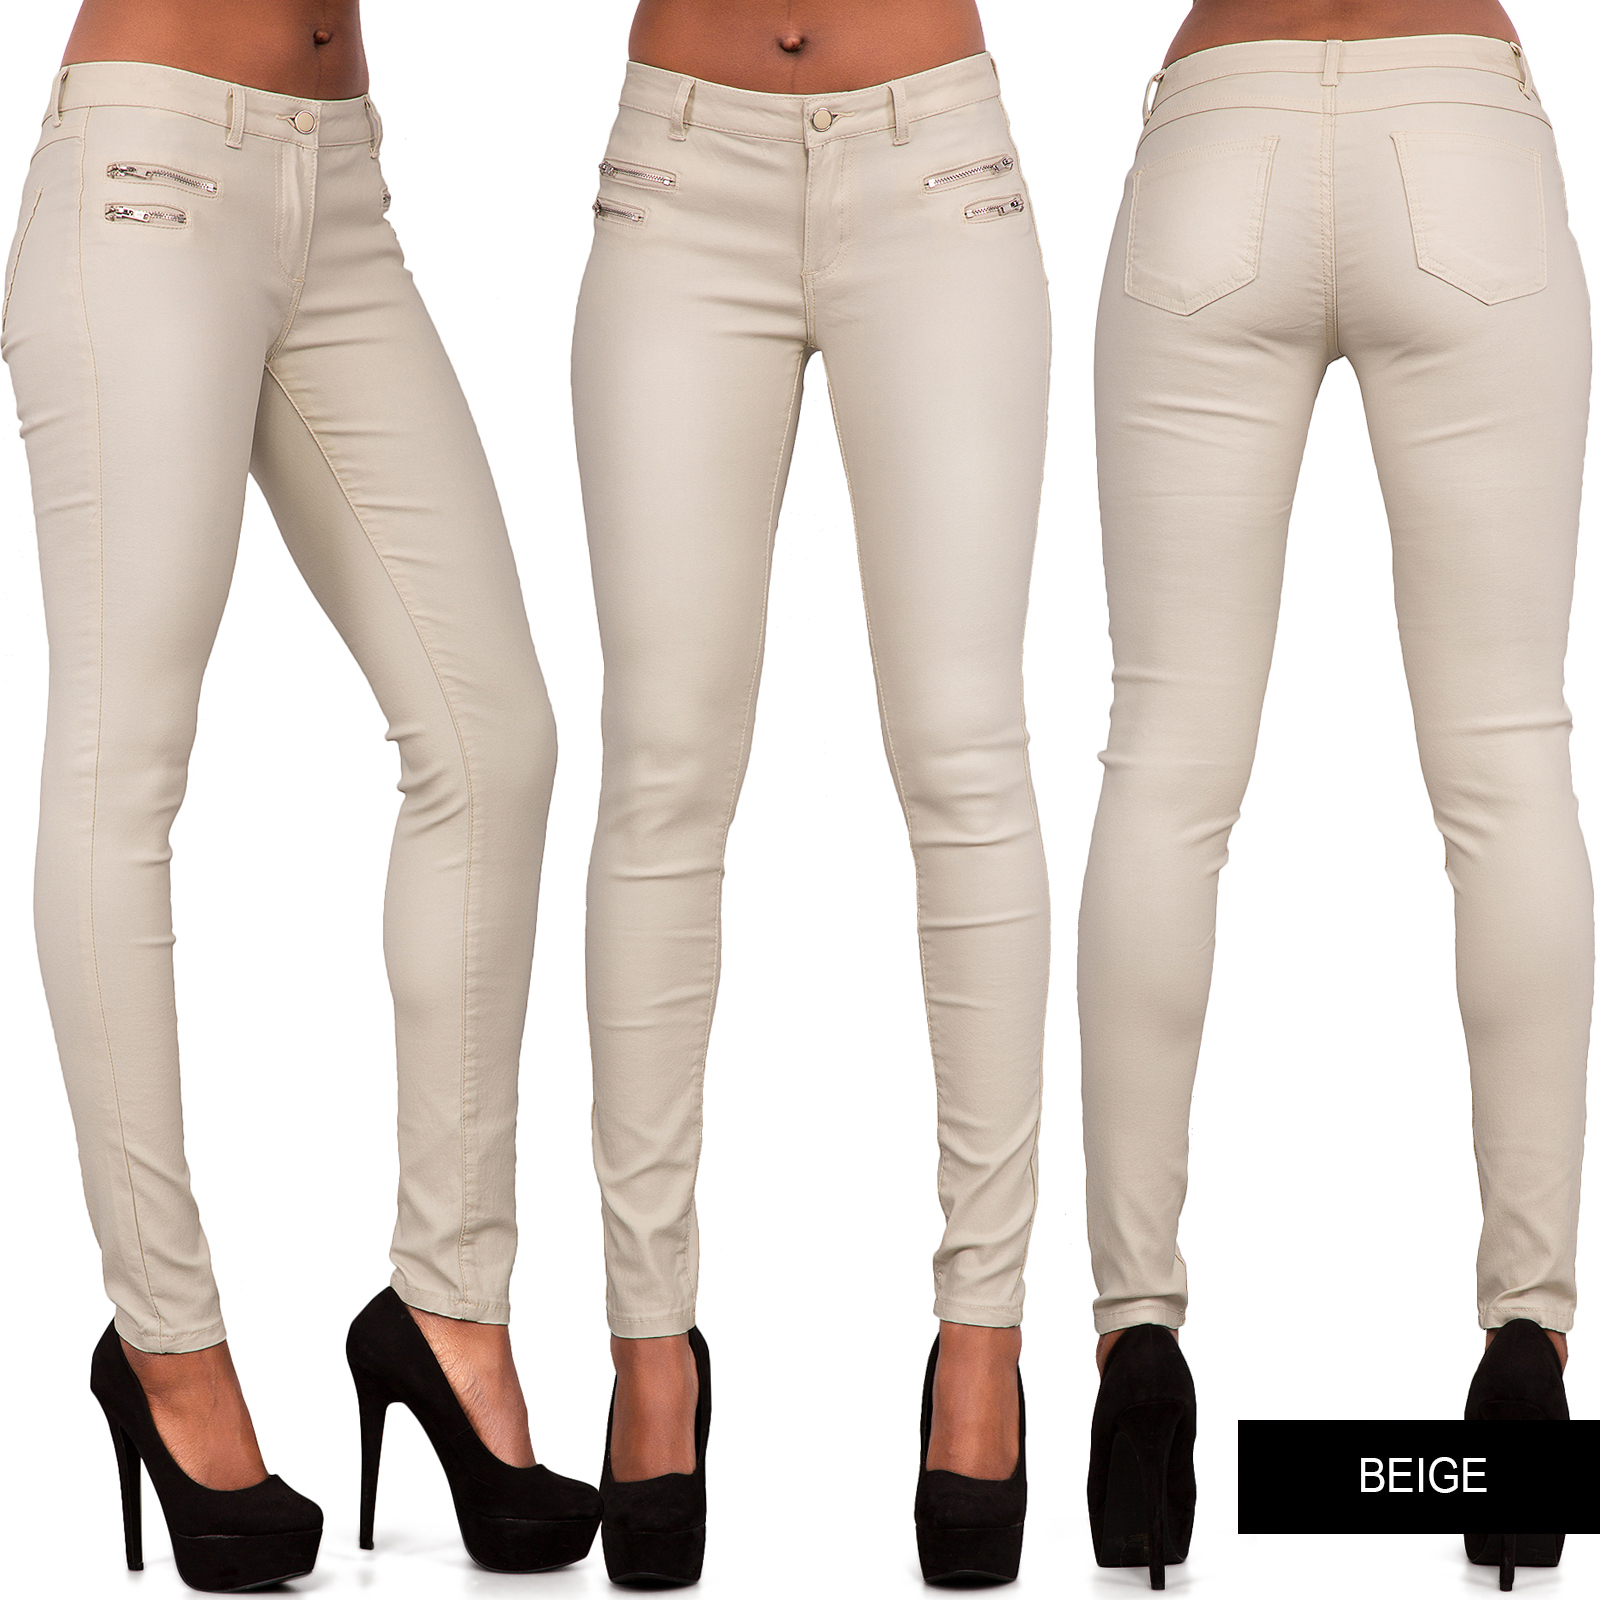 13 rows· / 12 Best Leather Leggings in ; 0 If you are looking for the best leather leggings .